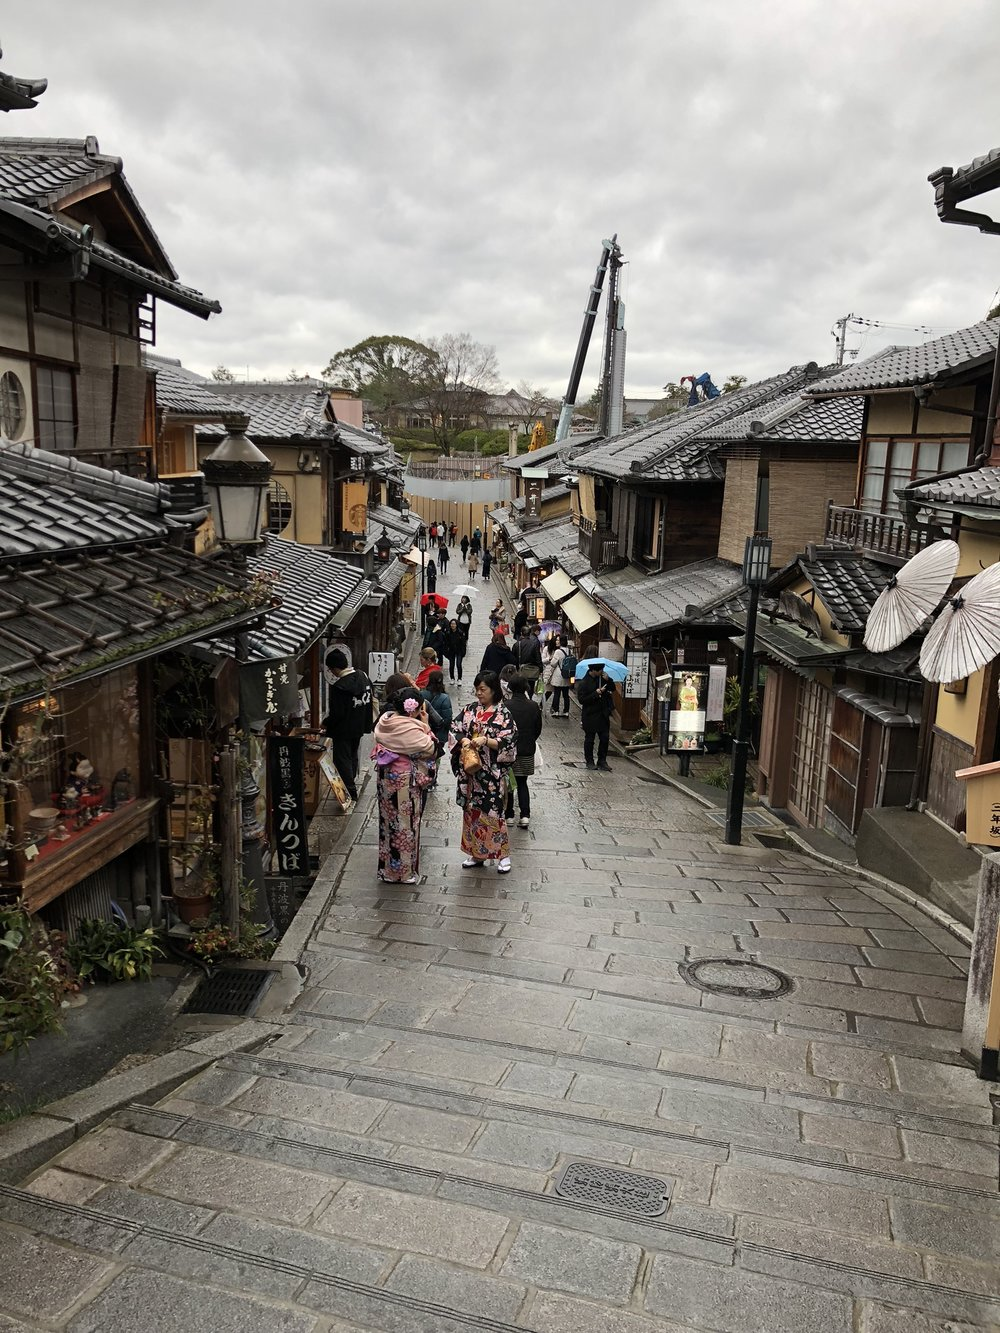 The Higashiyama district is packed with little streets like this one, Sannen-zaka, lined with traditional shops and restaurants. Surprisingly, full-sized cars still push their way through these mini streets.